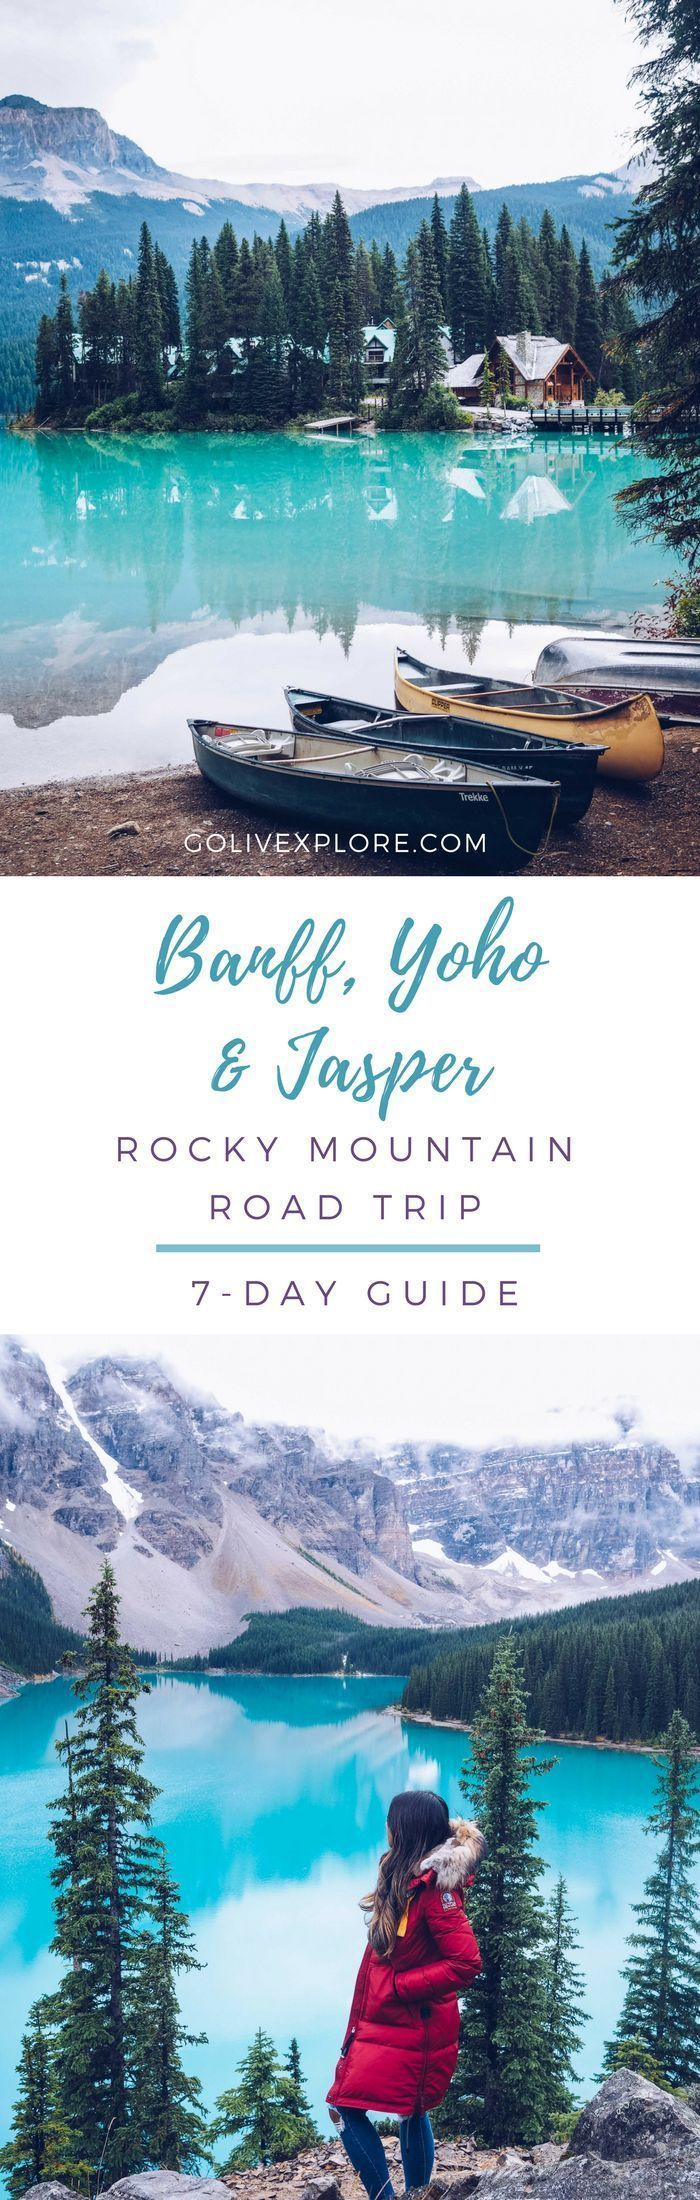 Road Tripping From Vancouver To The Rockies | A 7-Day Guide | Go Live Explore